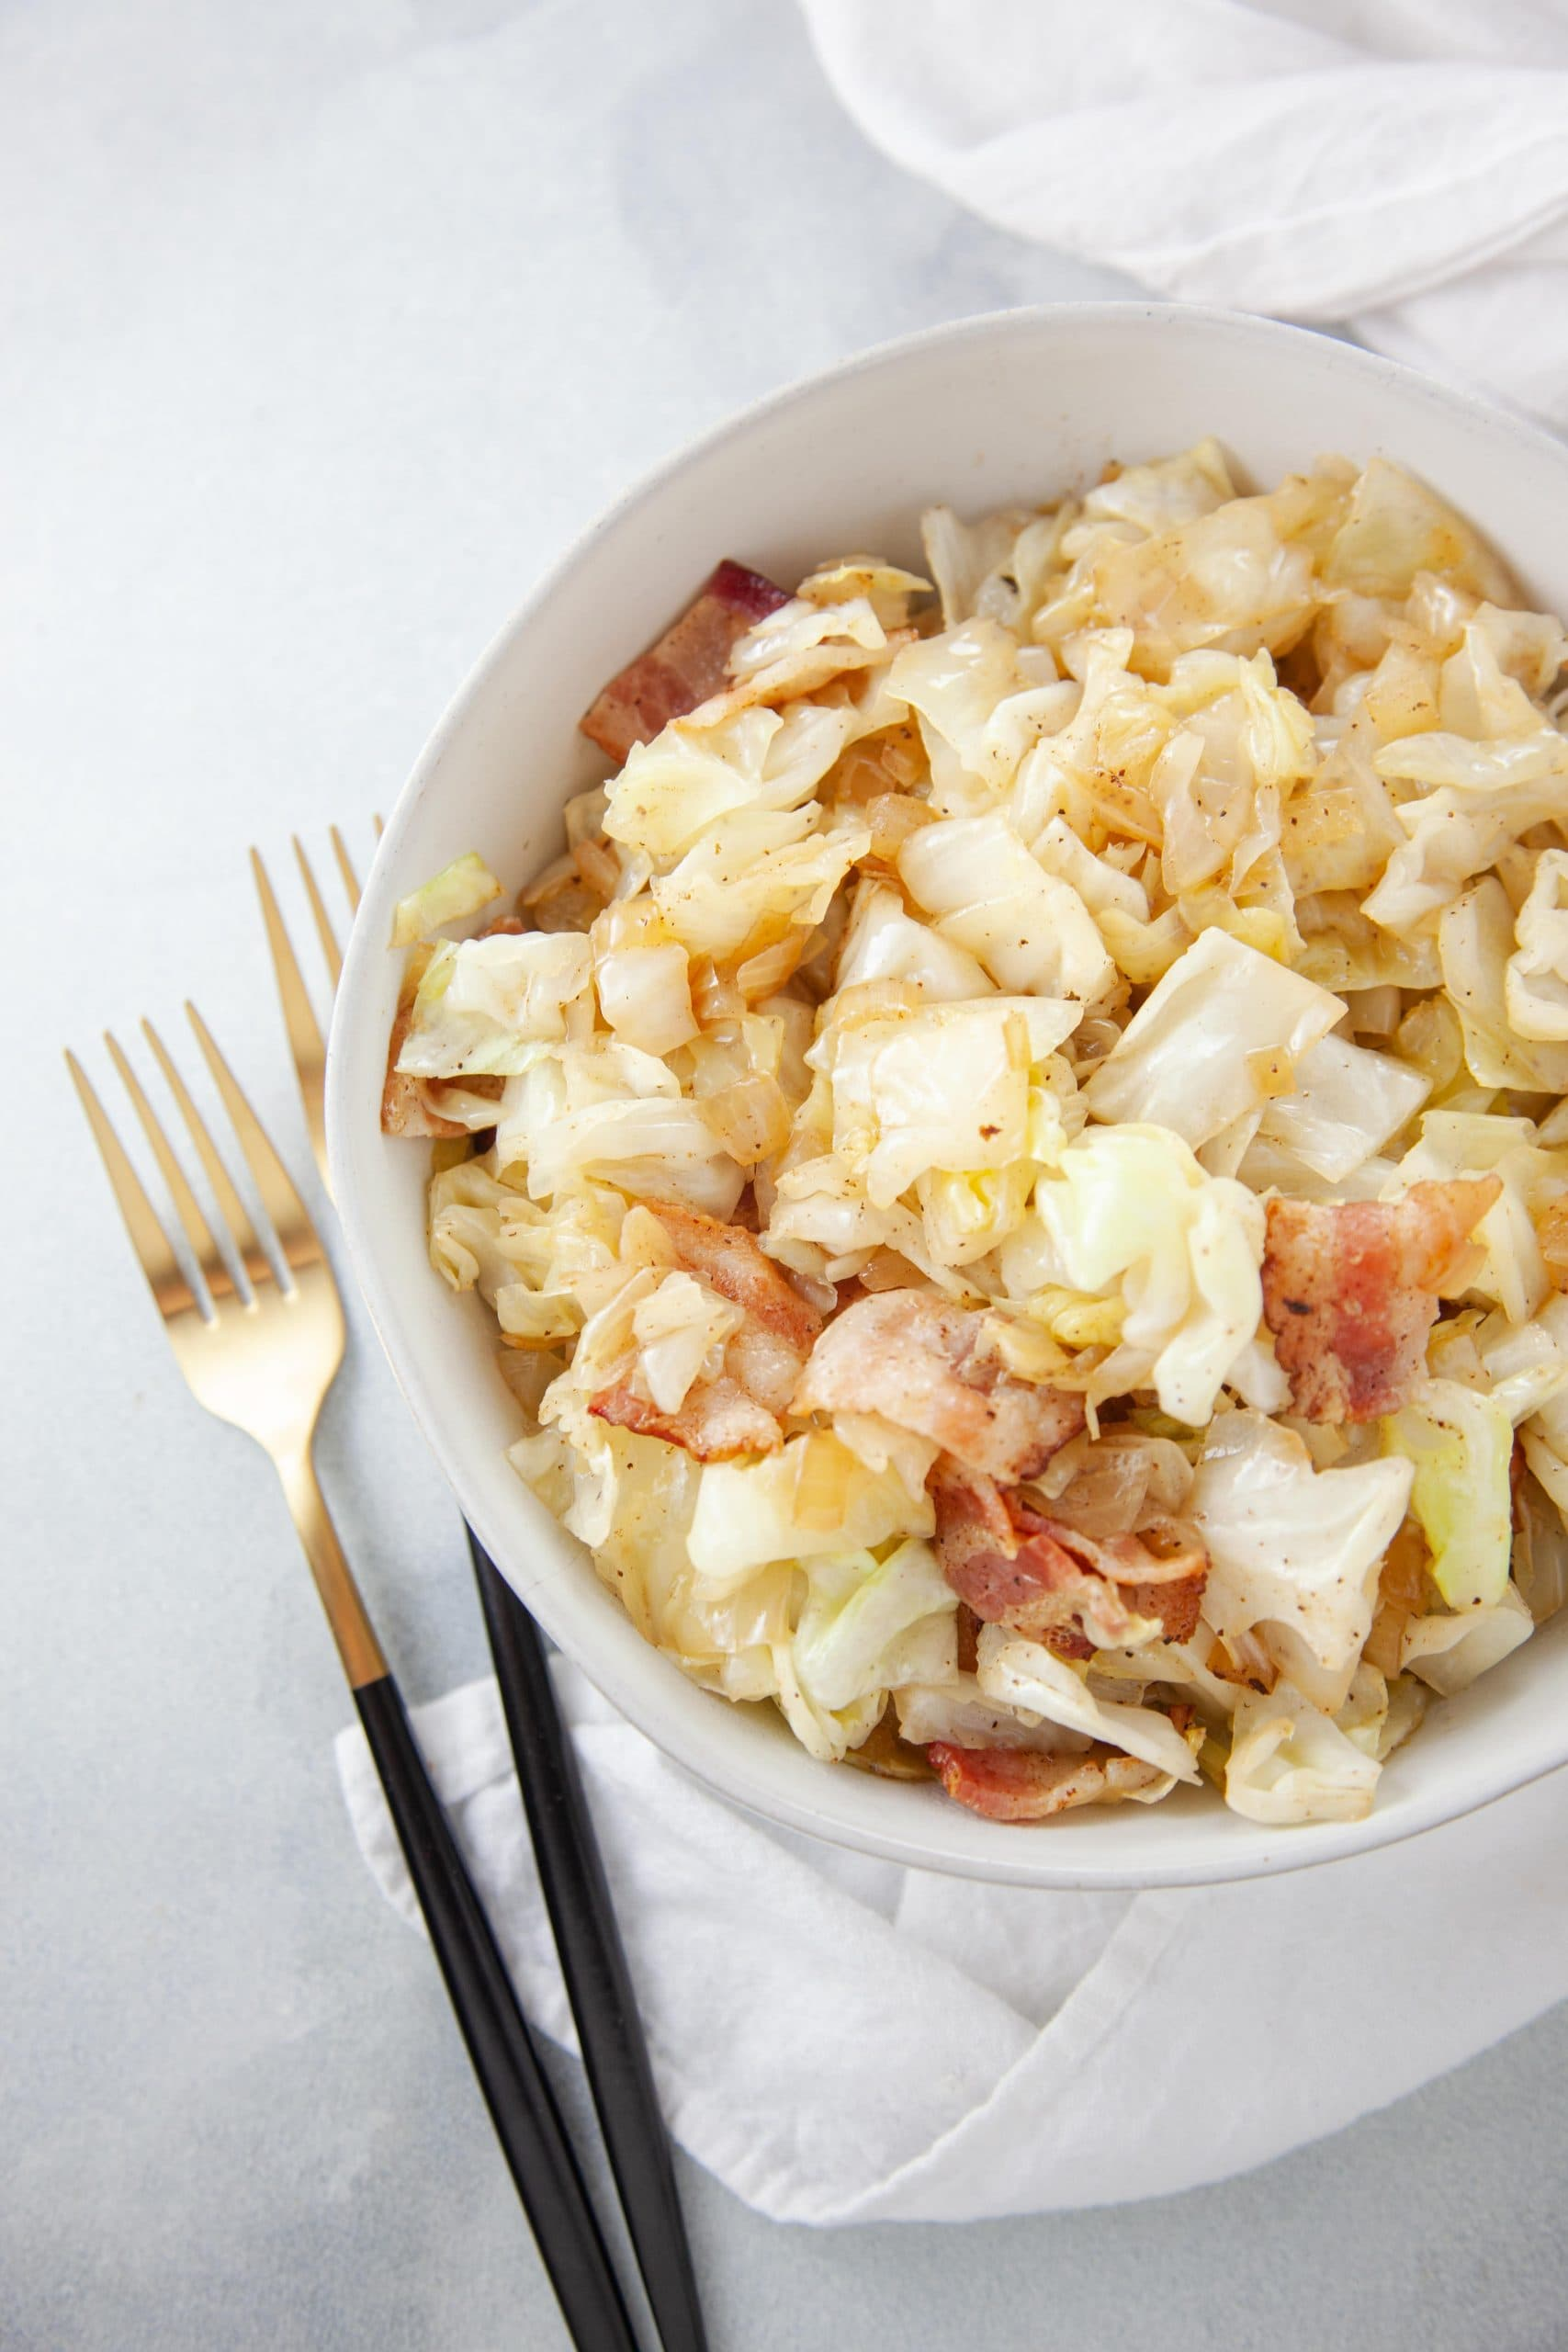 Southern Fried Cabbage and Bacon in a white bowl with black and gold silverware.